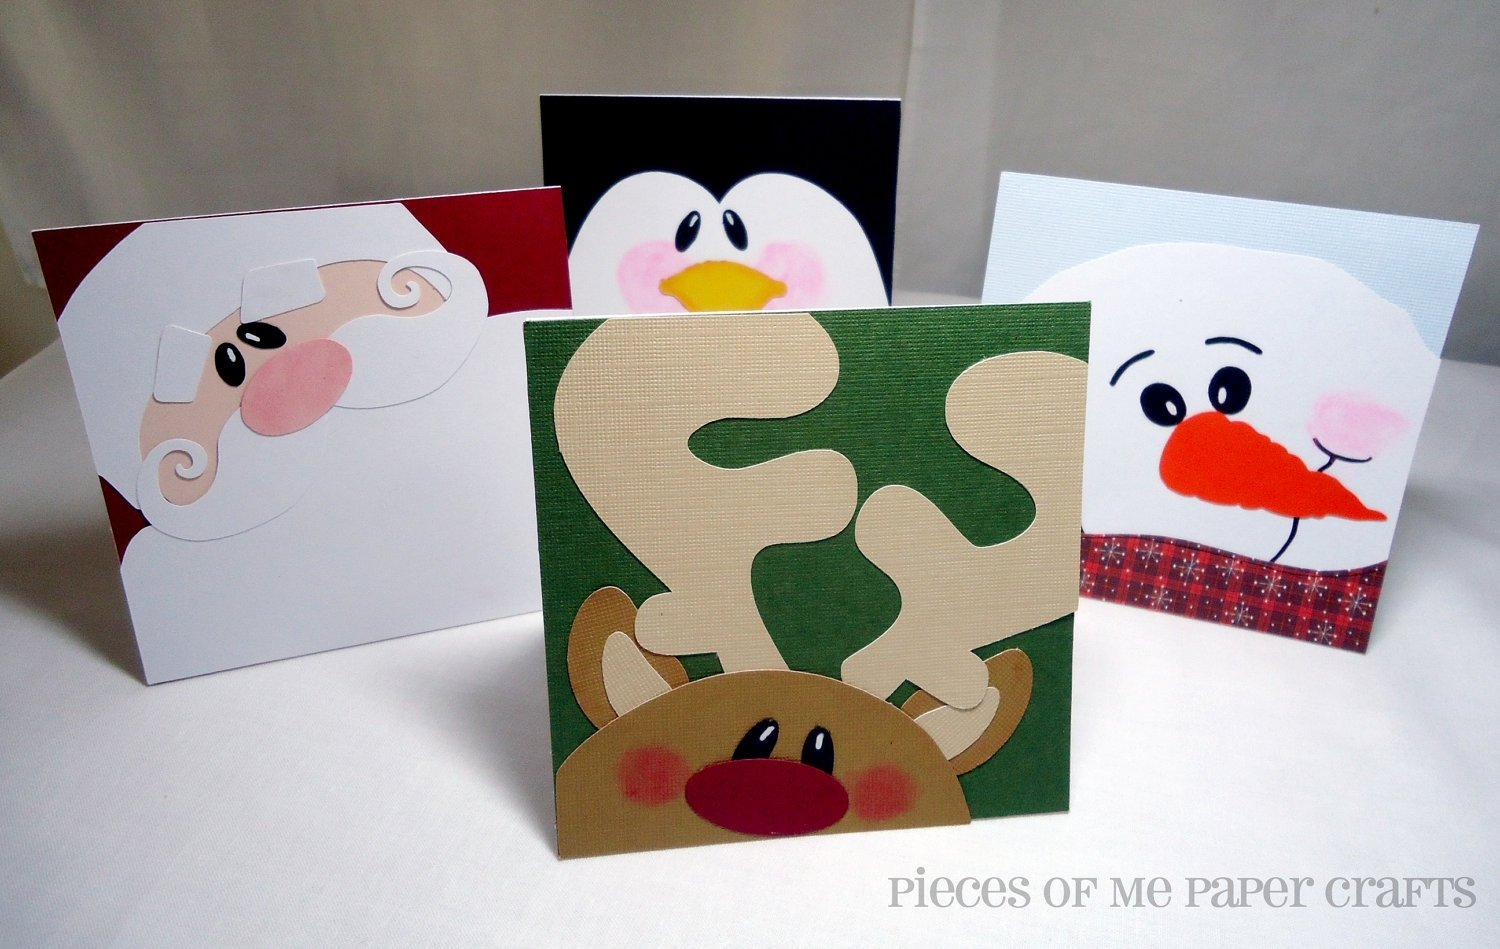 10 Unique Pinterest Christmas Card Photo Ideas cards ideas homemade christmas handmade xmas dma homes 2957 2020